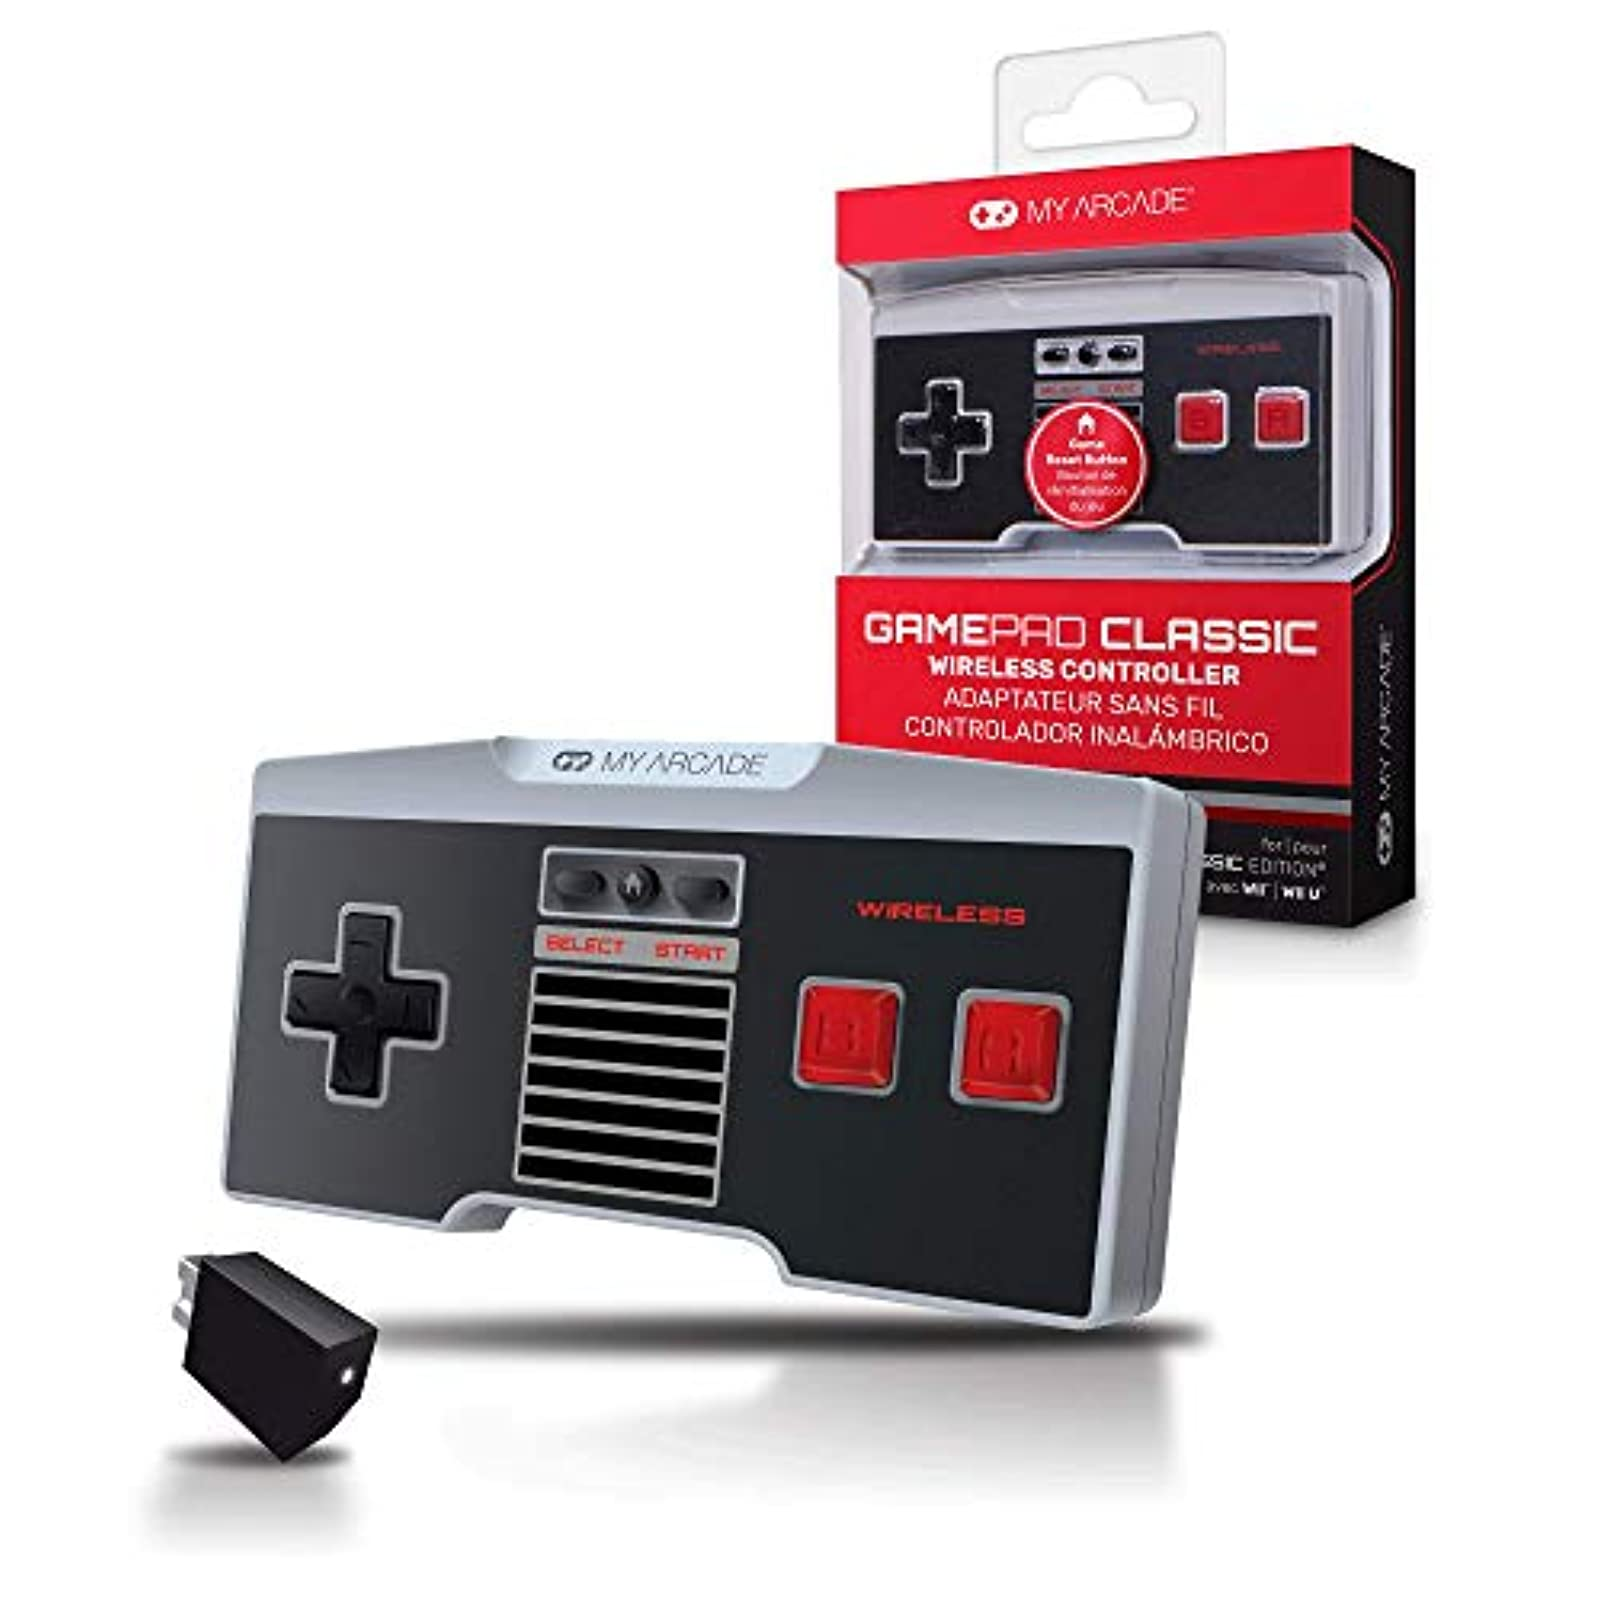 My Arcade Gamepad Classic Wireless Game Controller Compatible With Nintendo NES